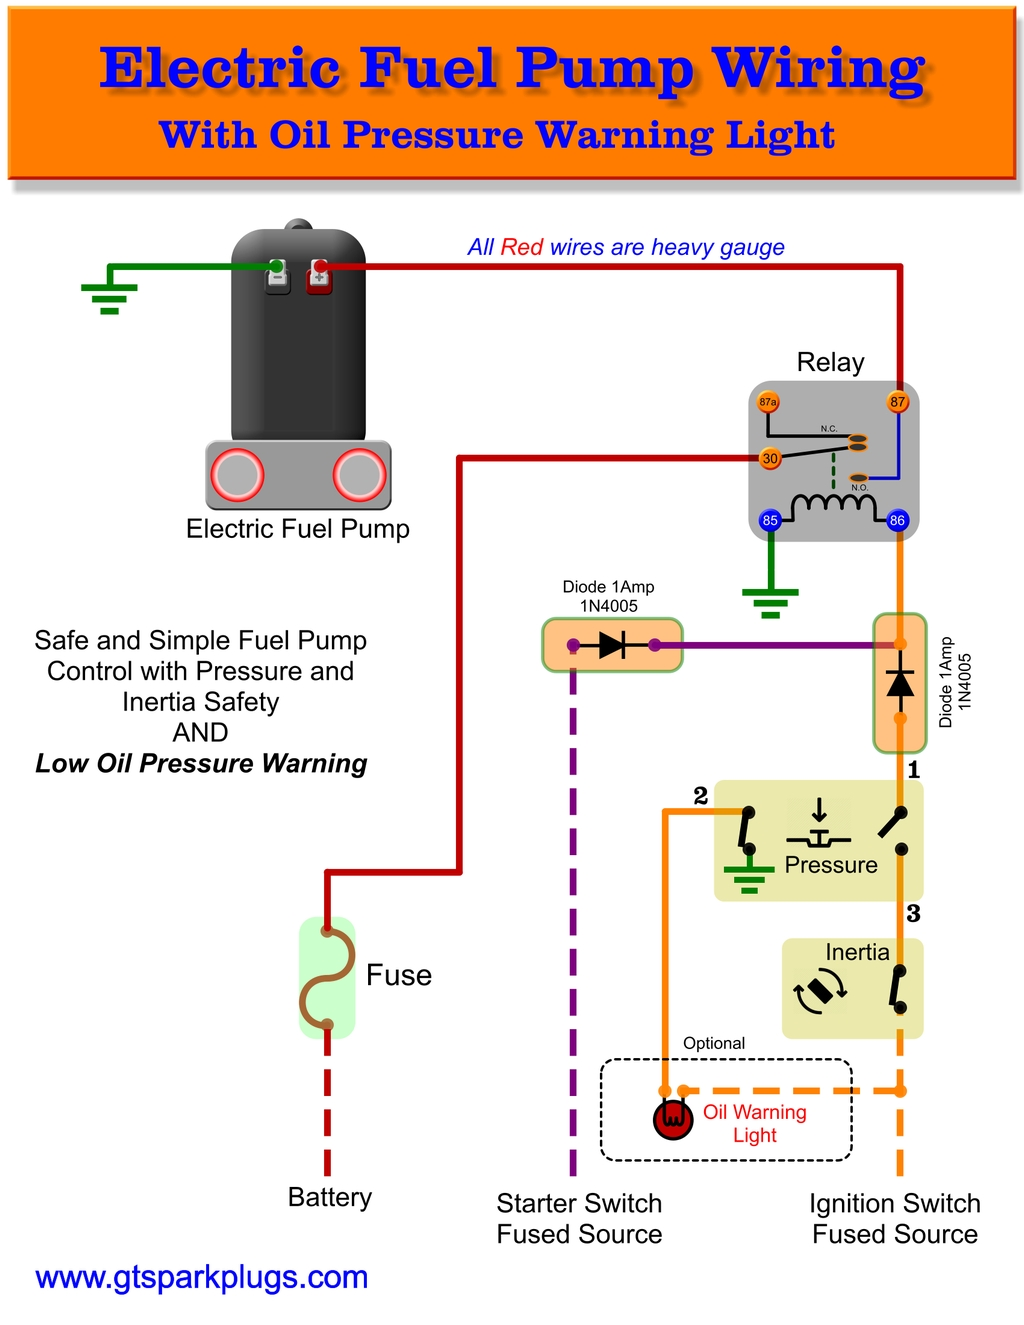 electric fuel pump wiring diagram gtsparkplugs rh gtsparkplugs com fuel pump relay circuit malfunction fuel pump relay circuit open